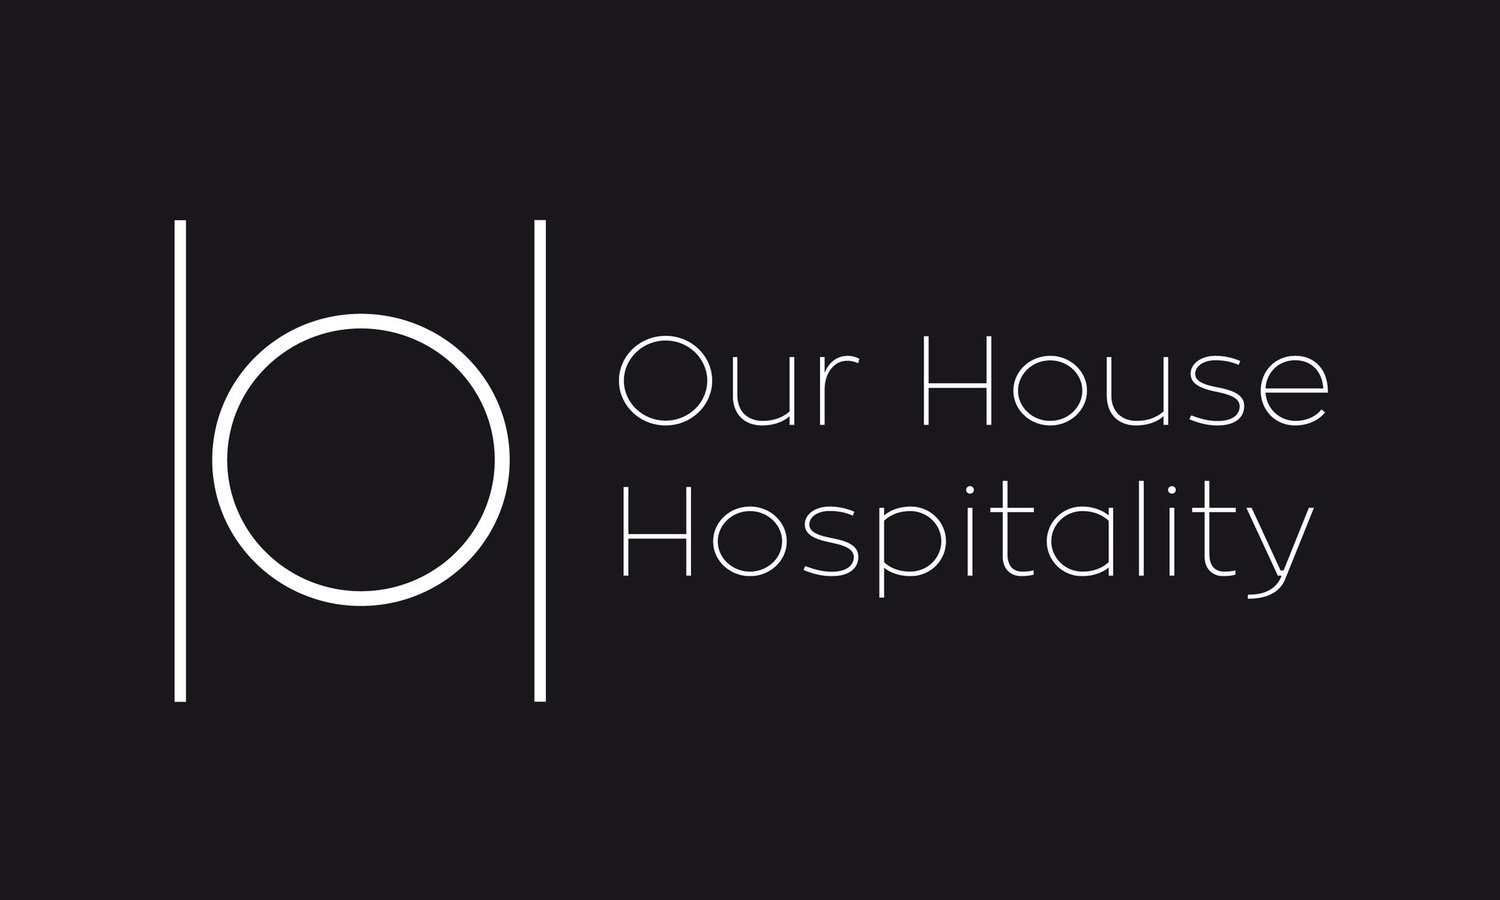 Our House Hospitality Group